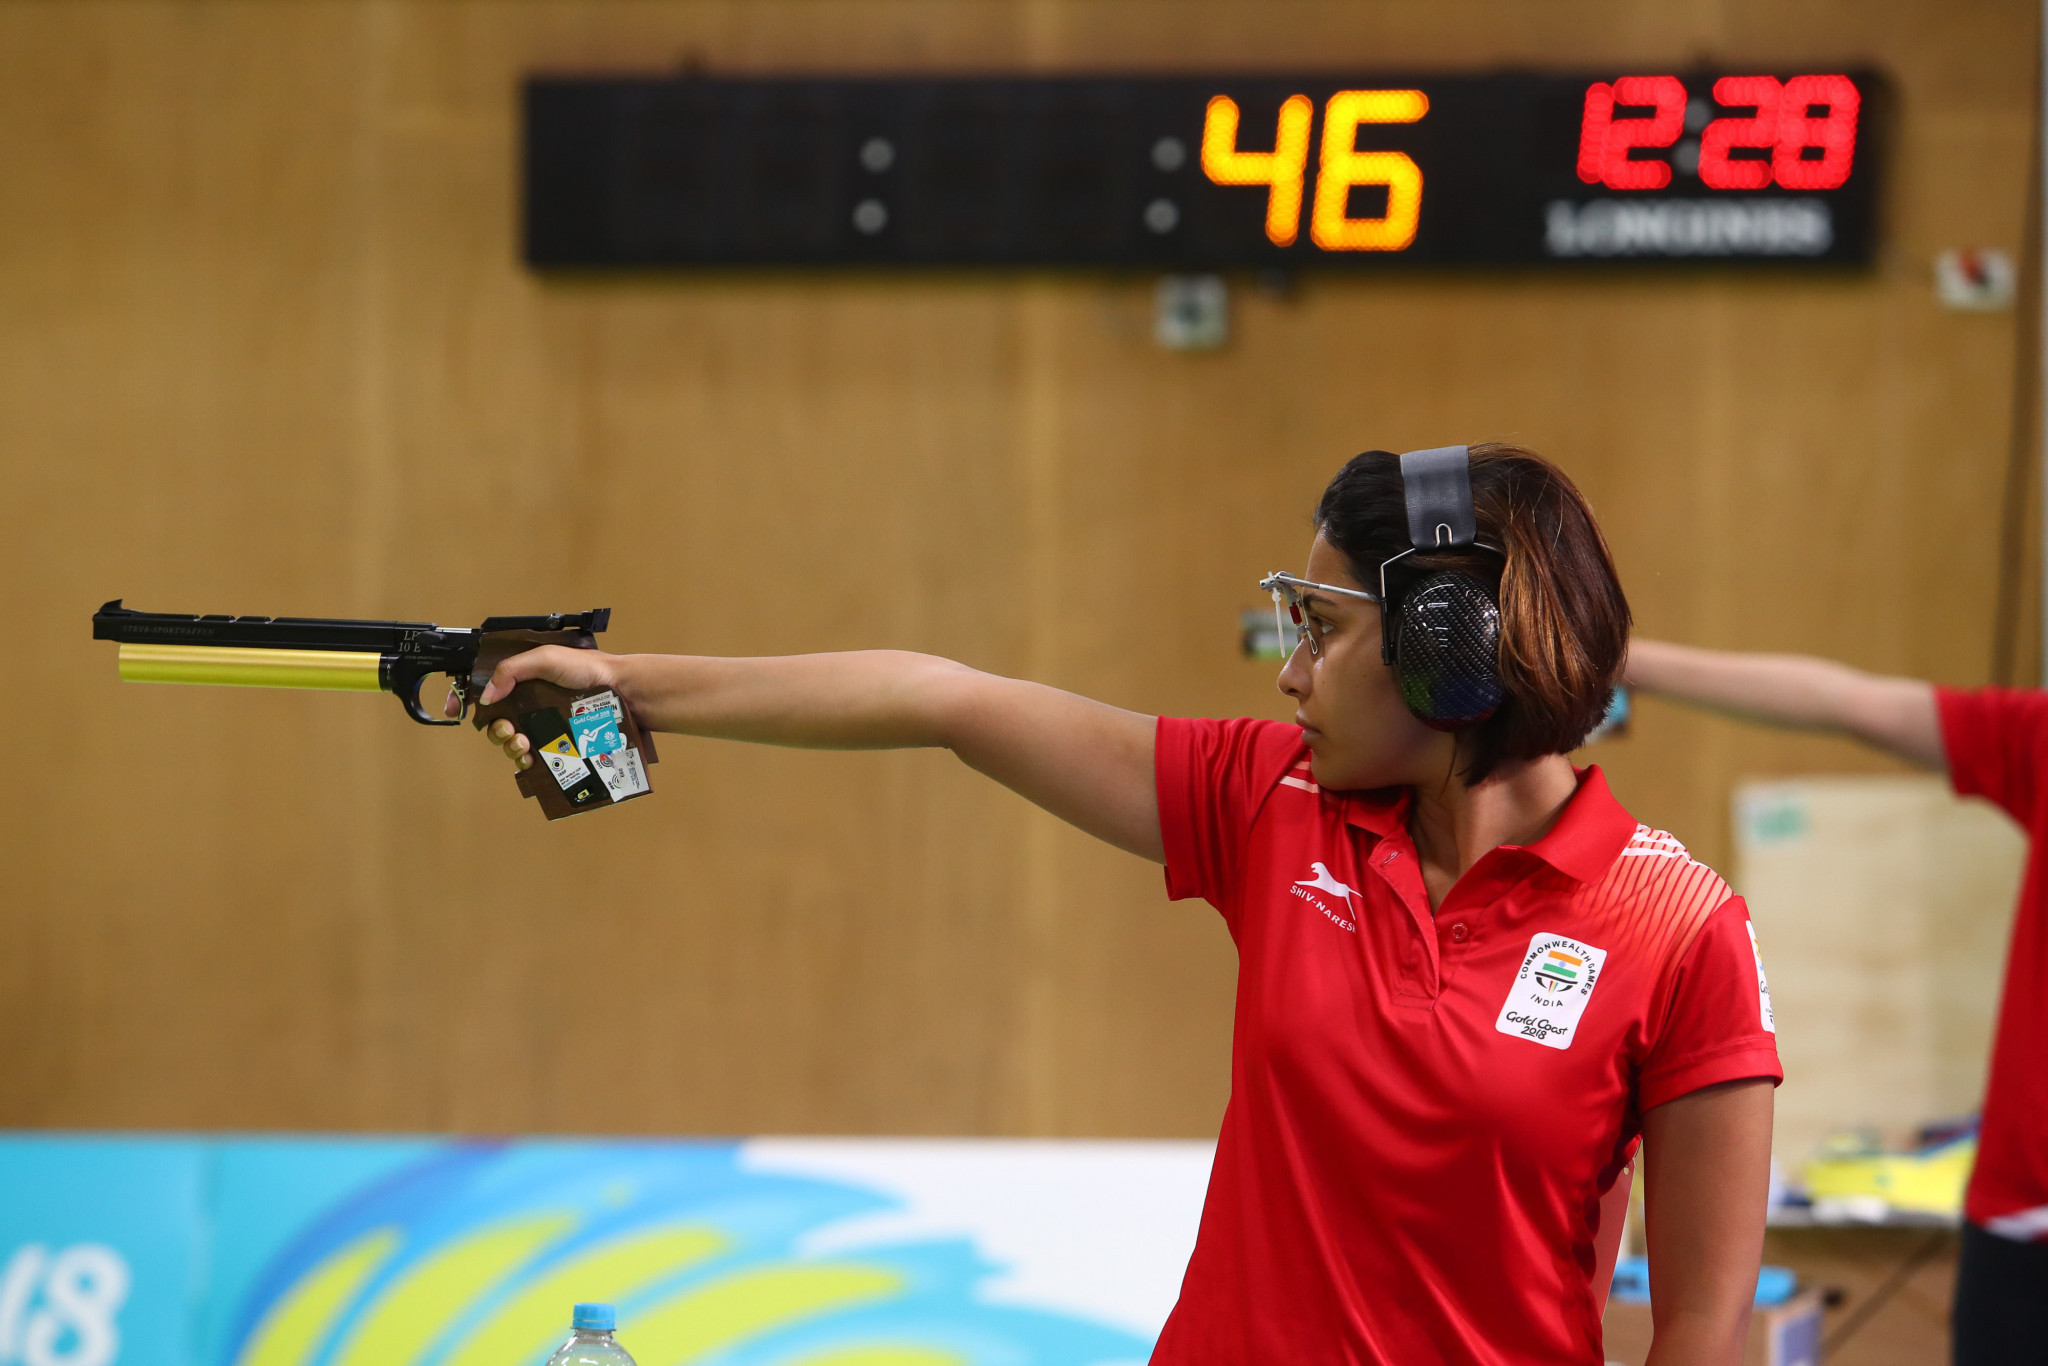 CGF approve proposal for India to host archery and shooting for Birmingham 2022